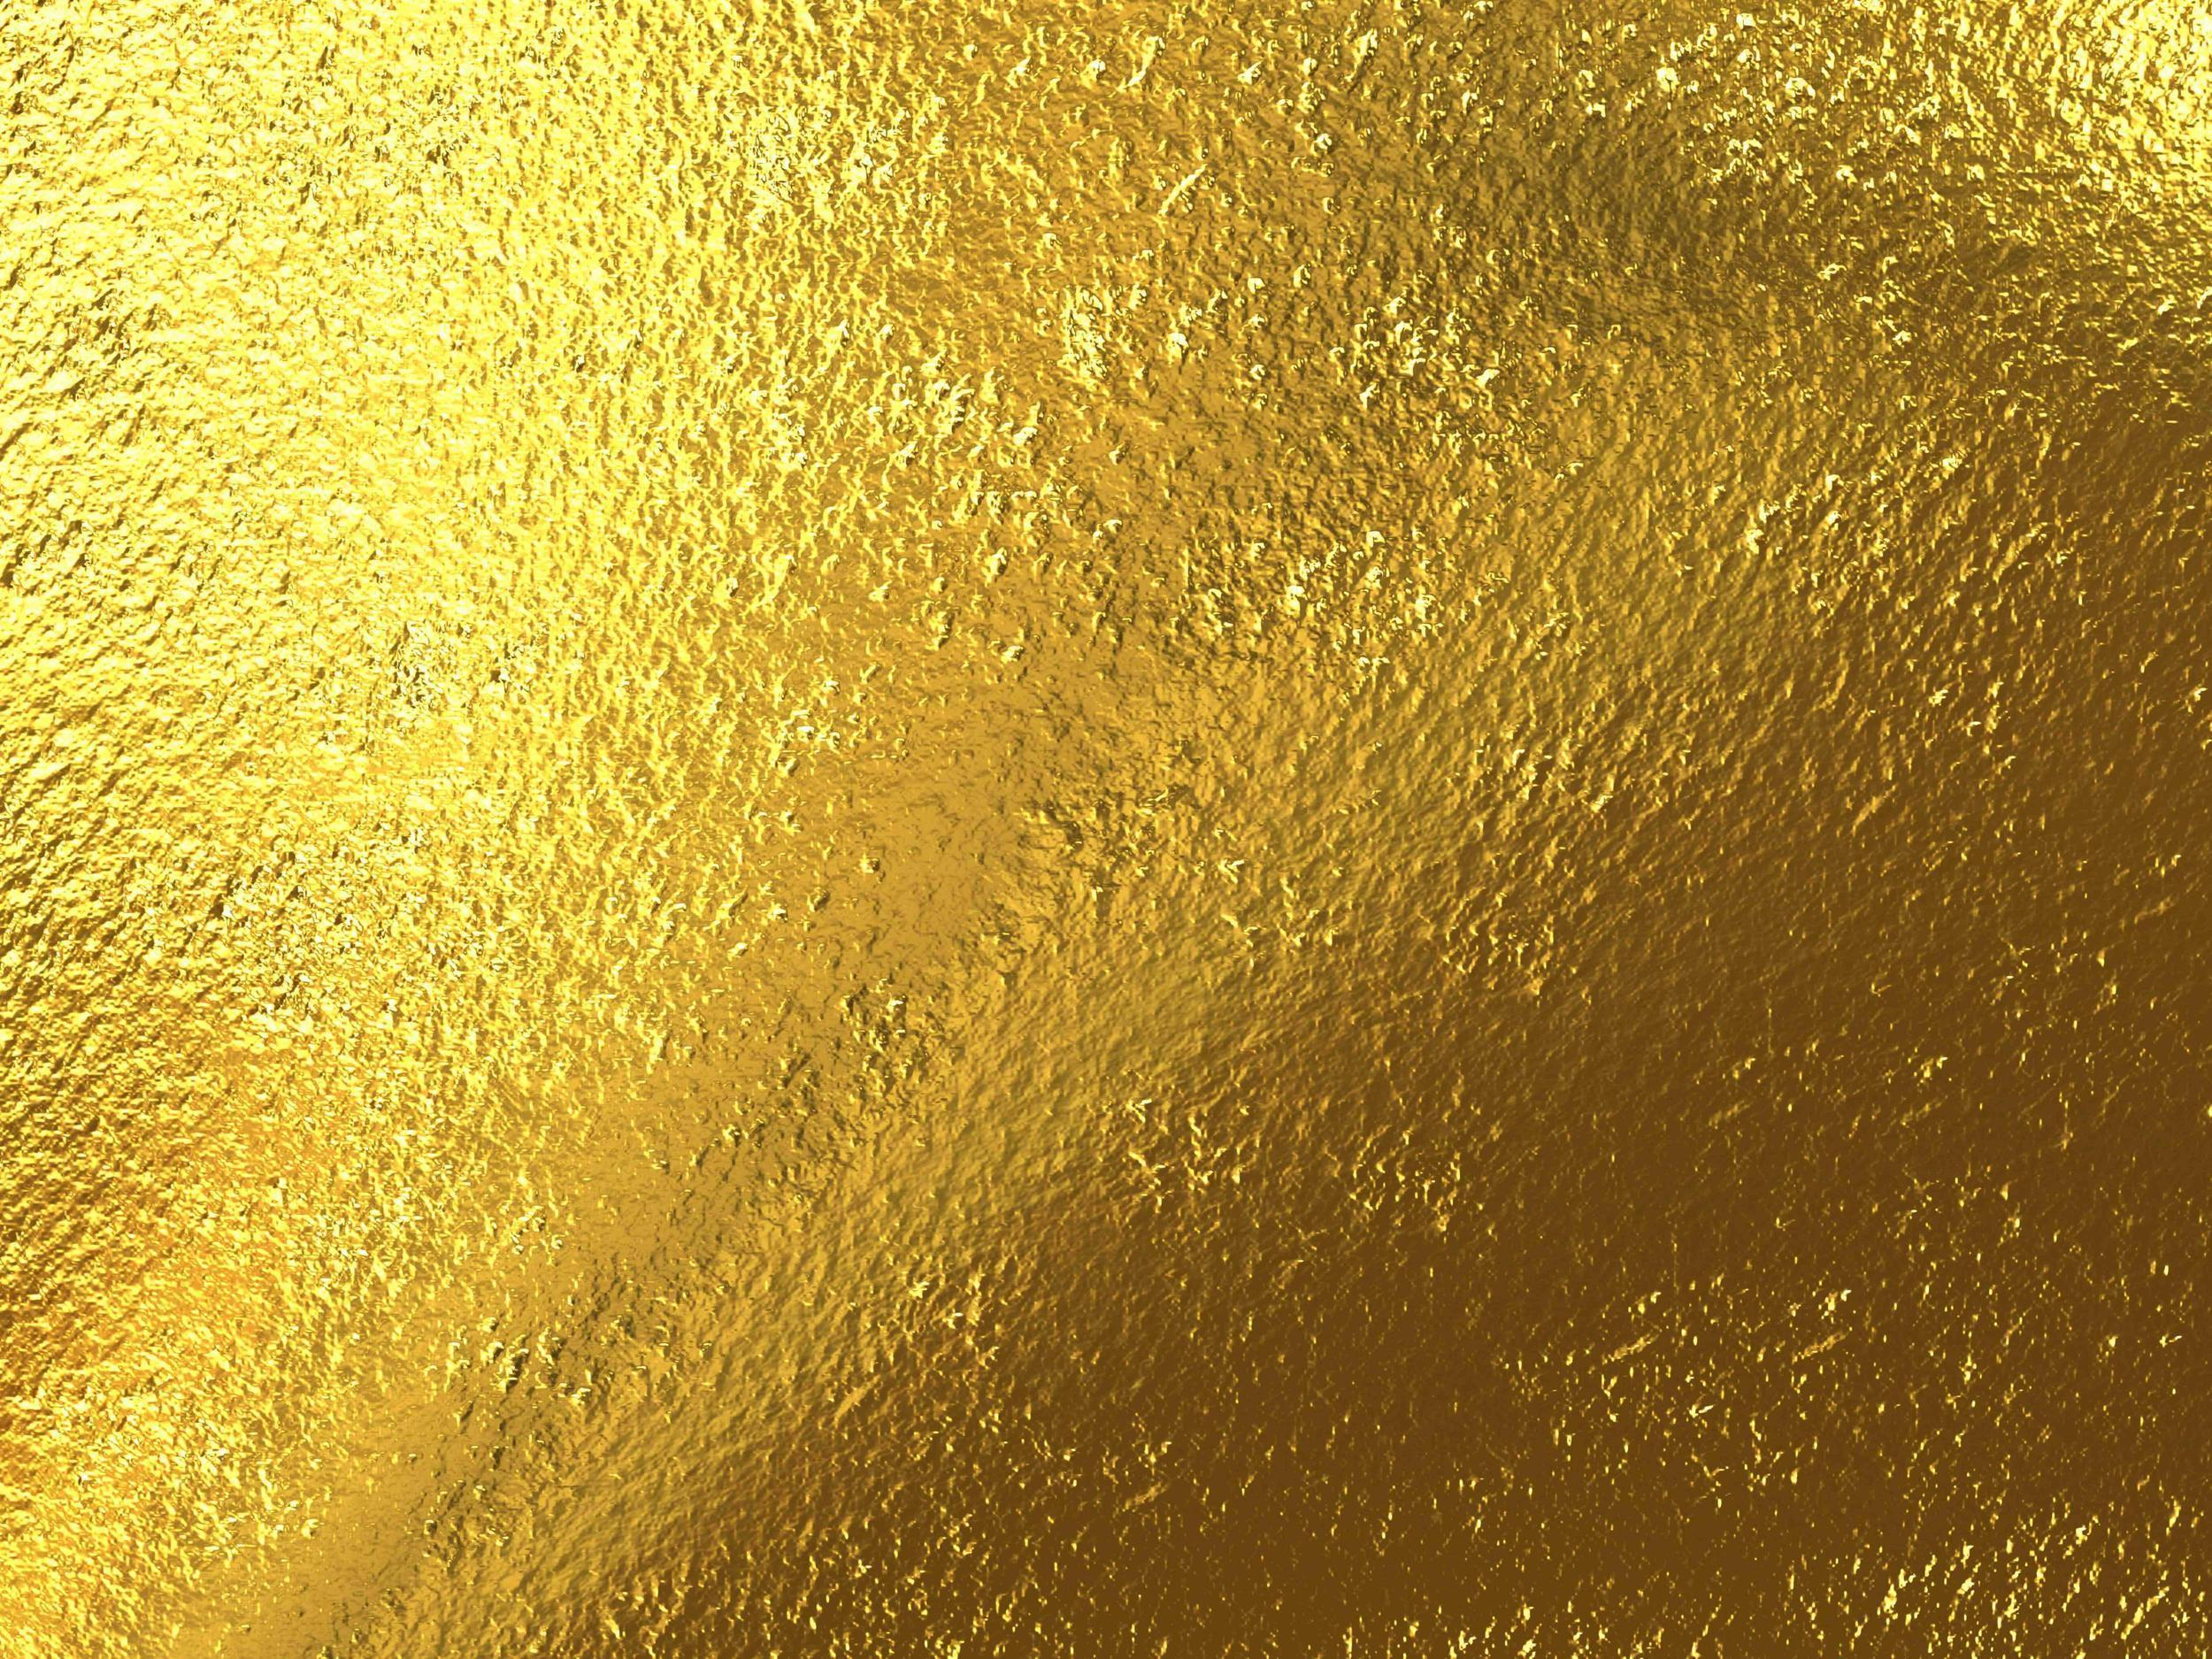 Gold Backgrounds Image 2500x1875